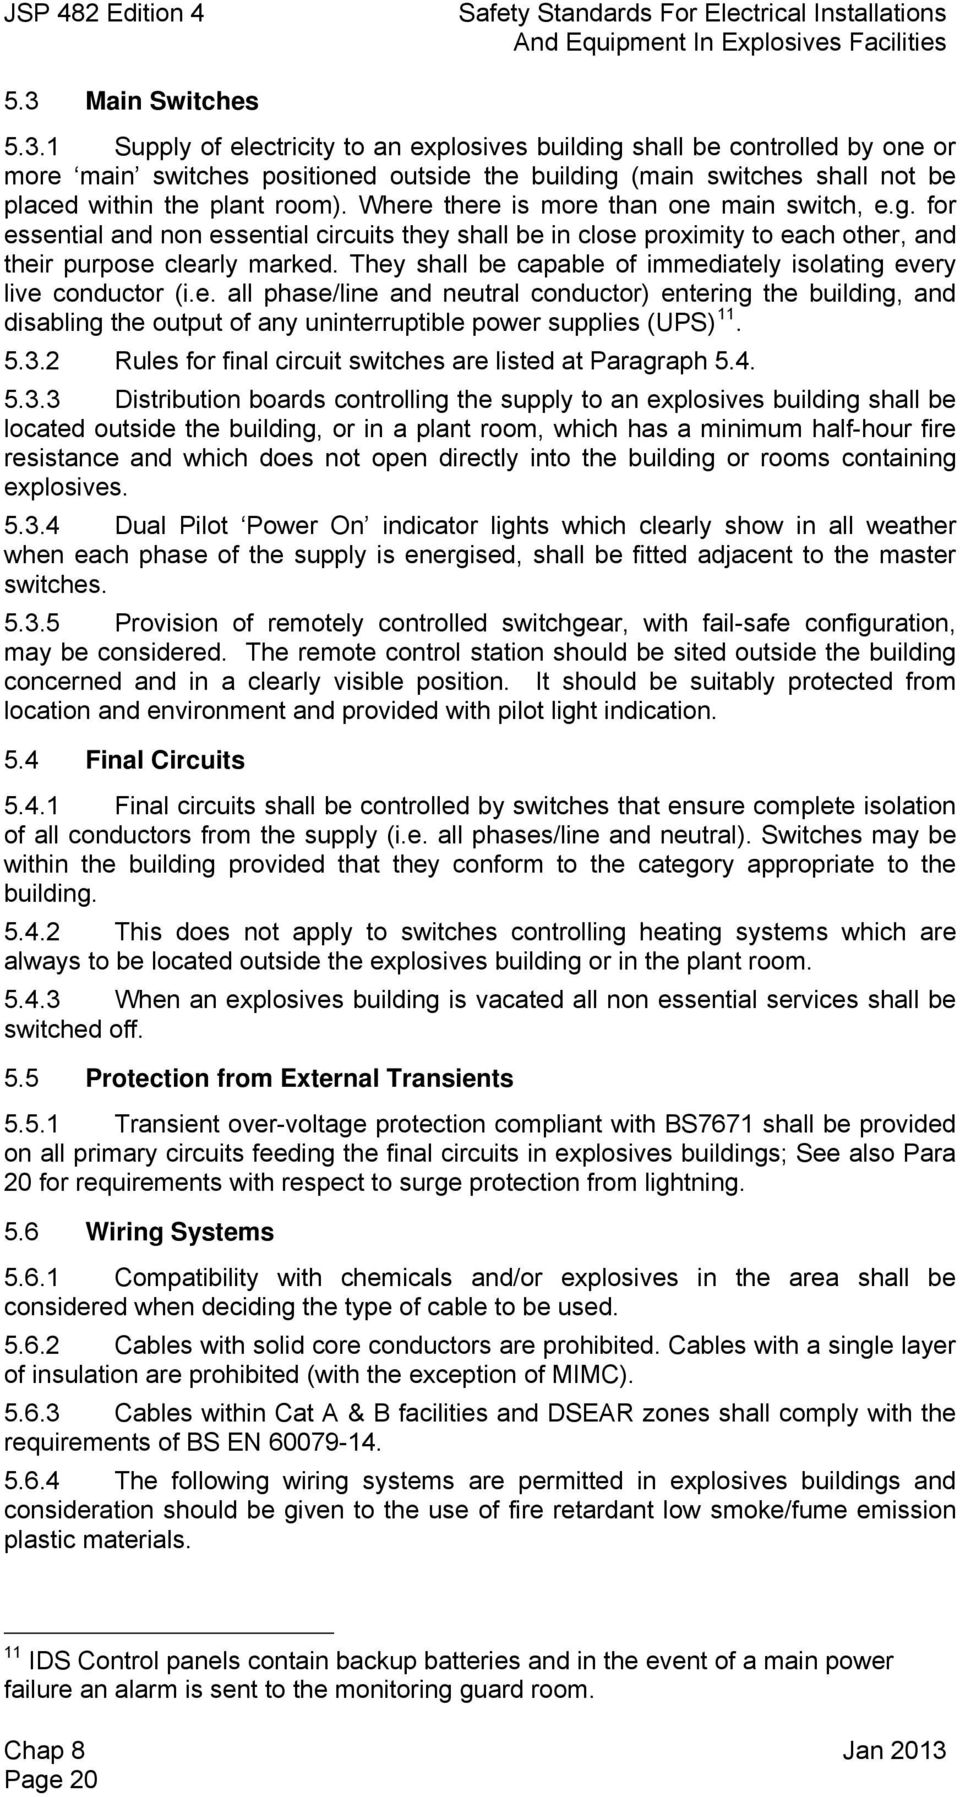 Safety Standards For Electrical Installations Jsp 482 Edition 4 And How To Build Mains Supply Failure Alarm 1 Of Electricity An Explosives Building Shall Be Controlled By One Or More Main